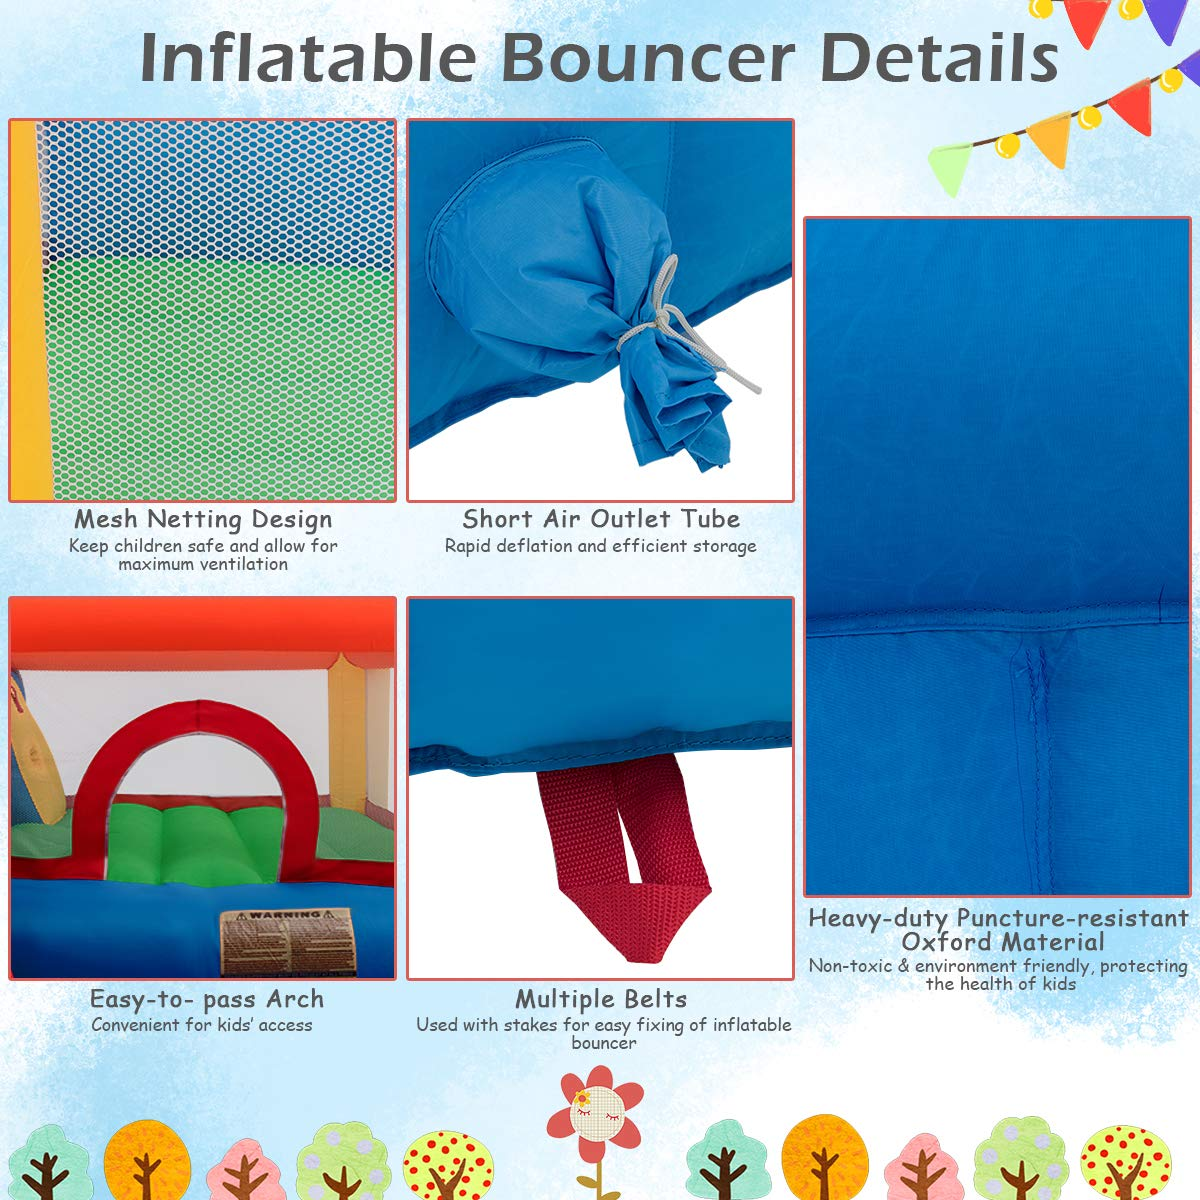 Costzon Inflatable Bounce House, 5-in-1 Water Slide w/ Climbing Wall, Jumping Area, Splash Pool, Water Cannon, Including Oxford Carry Bag, Repairing Kit, Stakes, Hose, Without Blower by Costzon (Image #4)